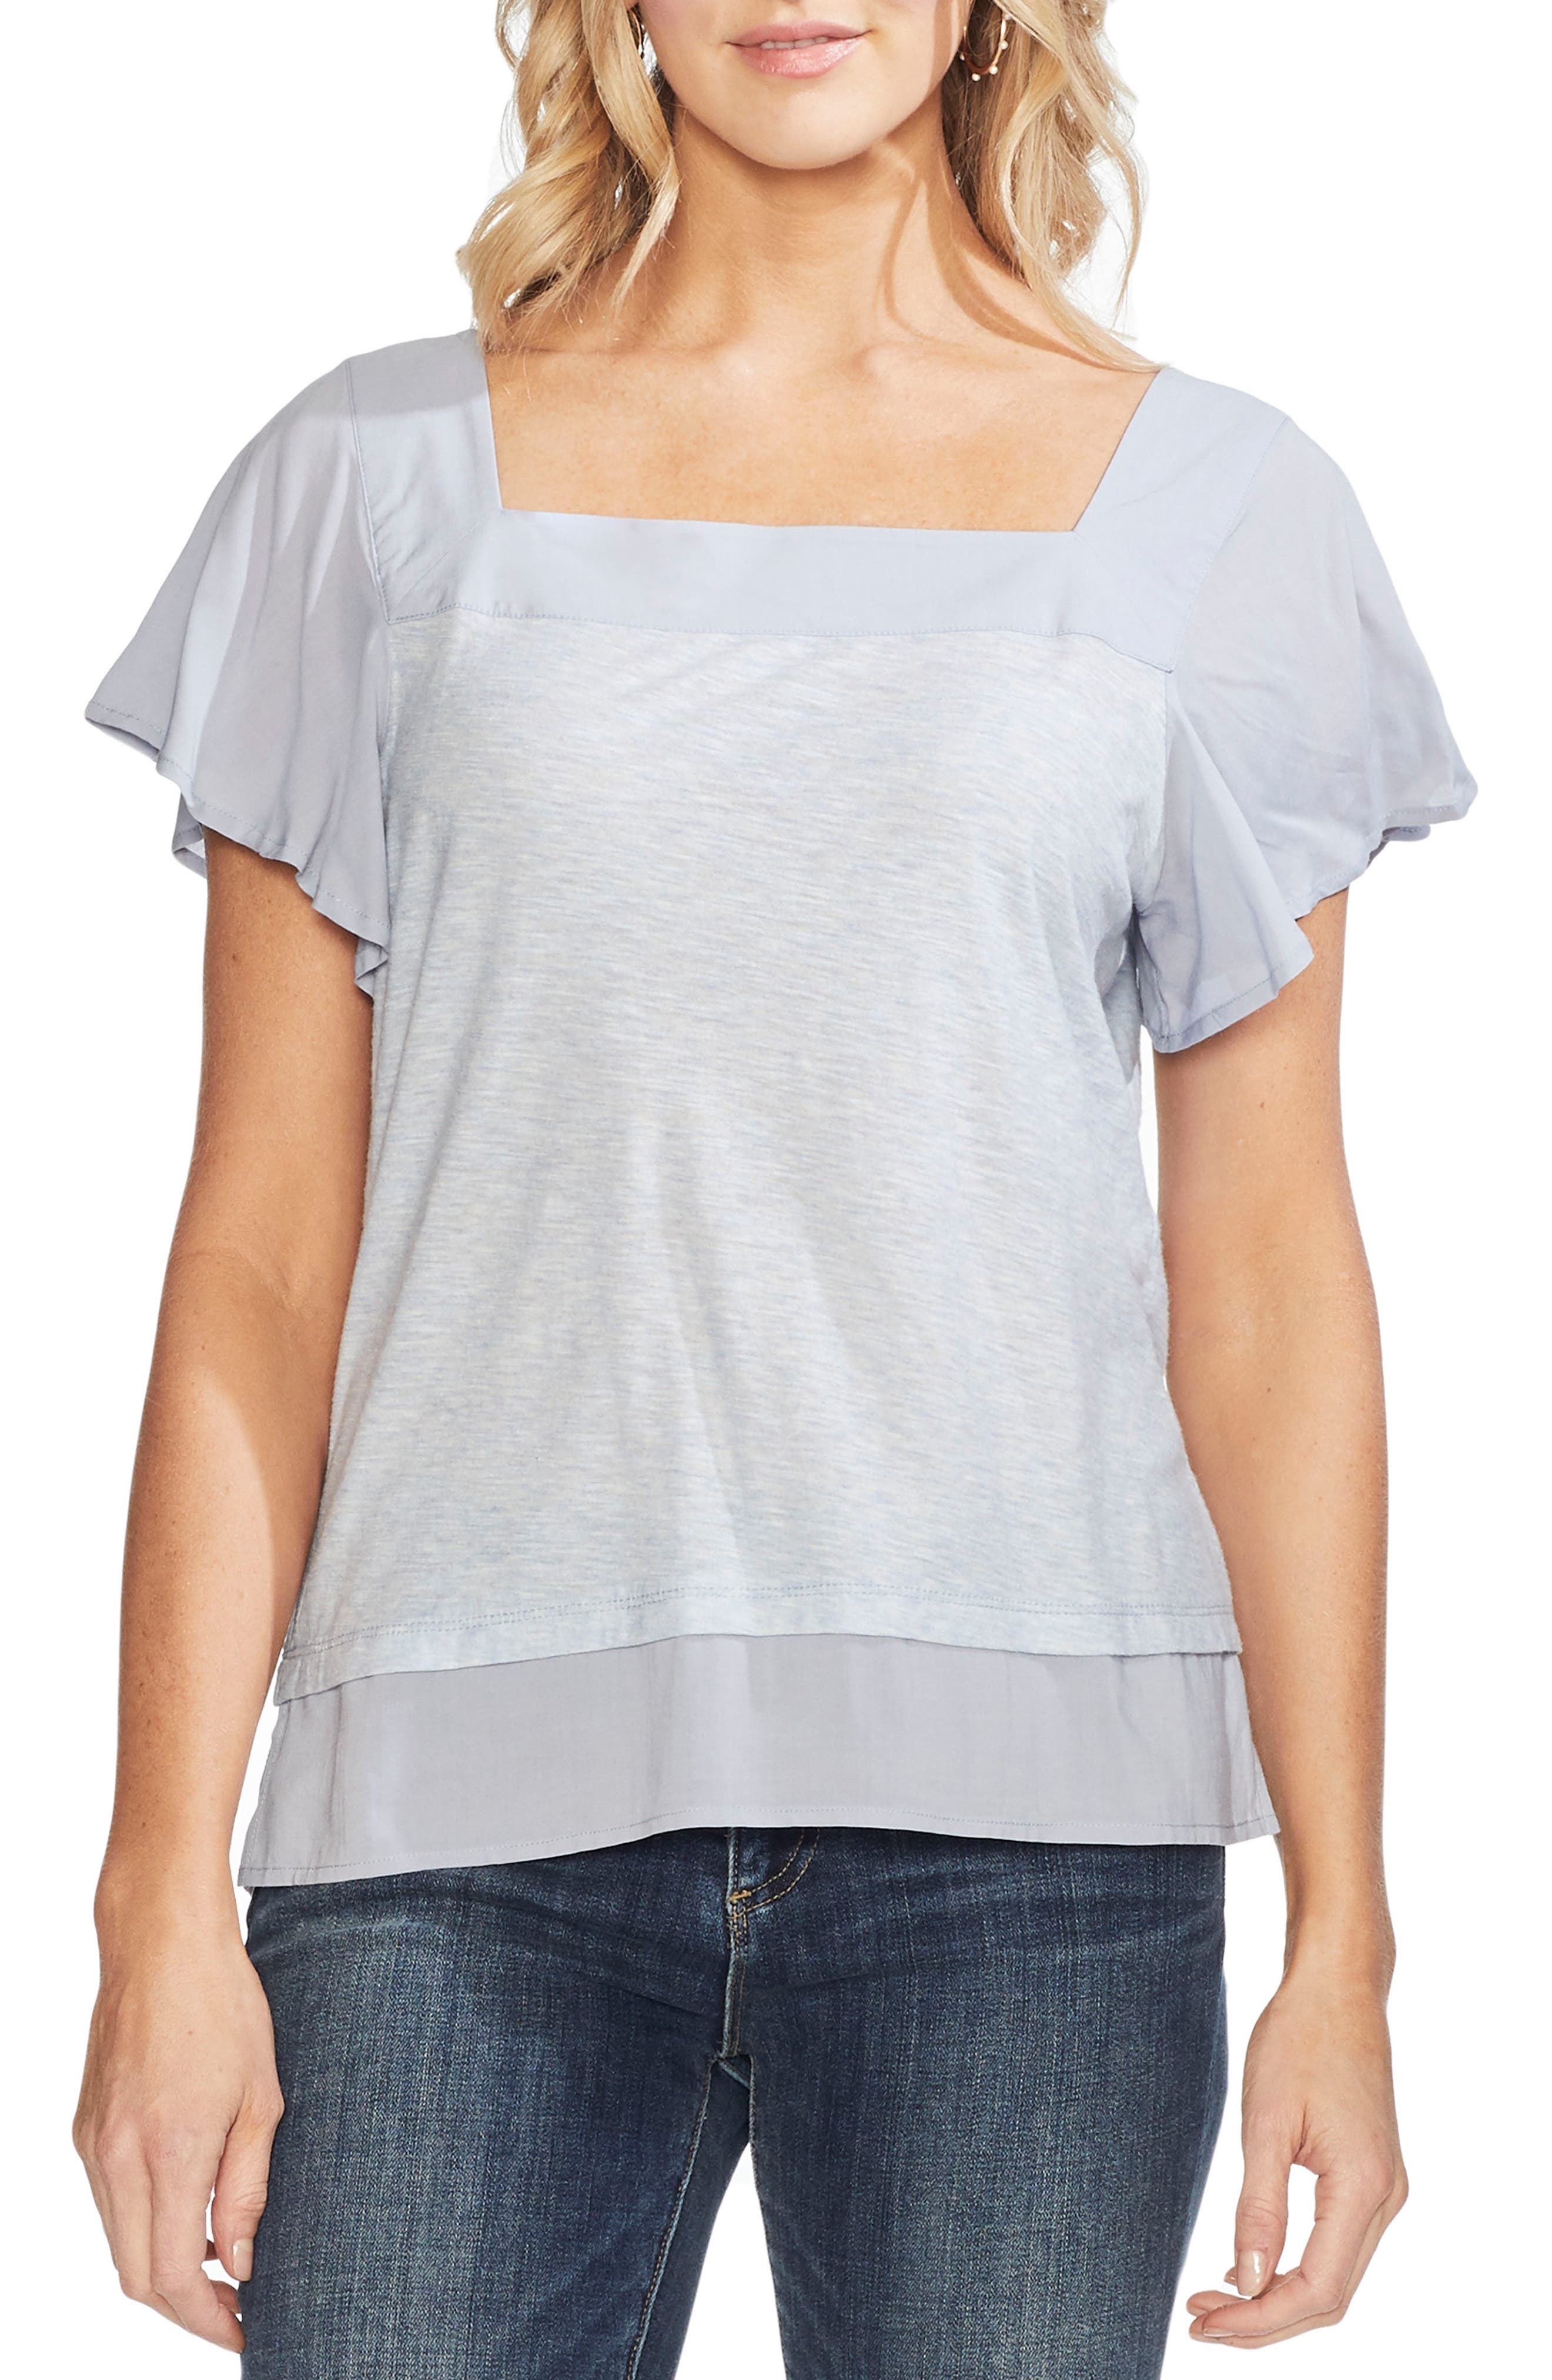 c0037f5221a0f Petite Vince Camuto Layered Look Flutter Sleeve Top